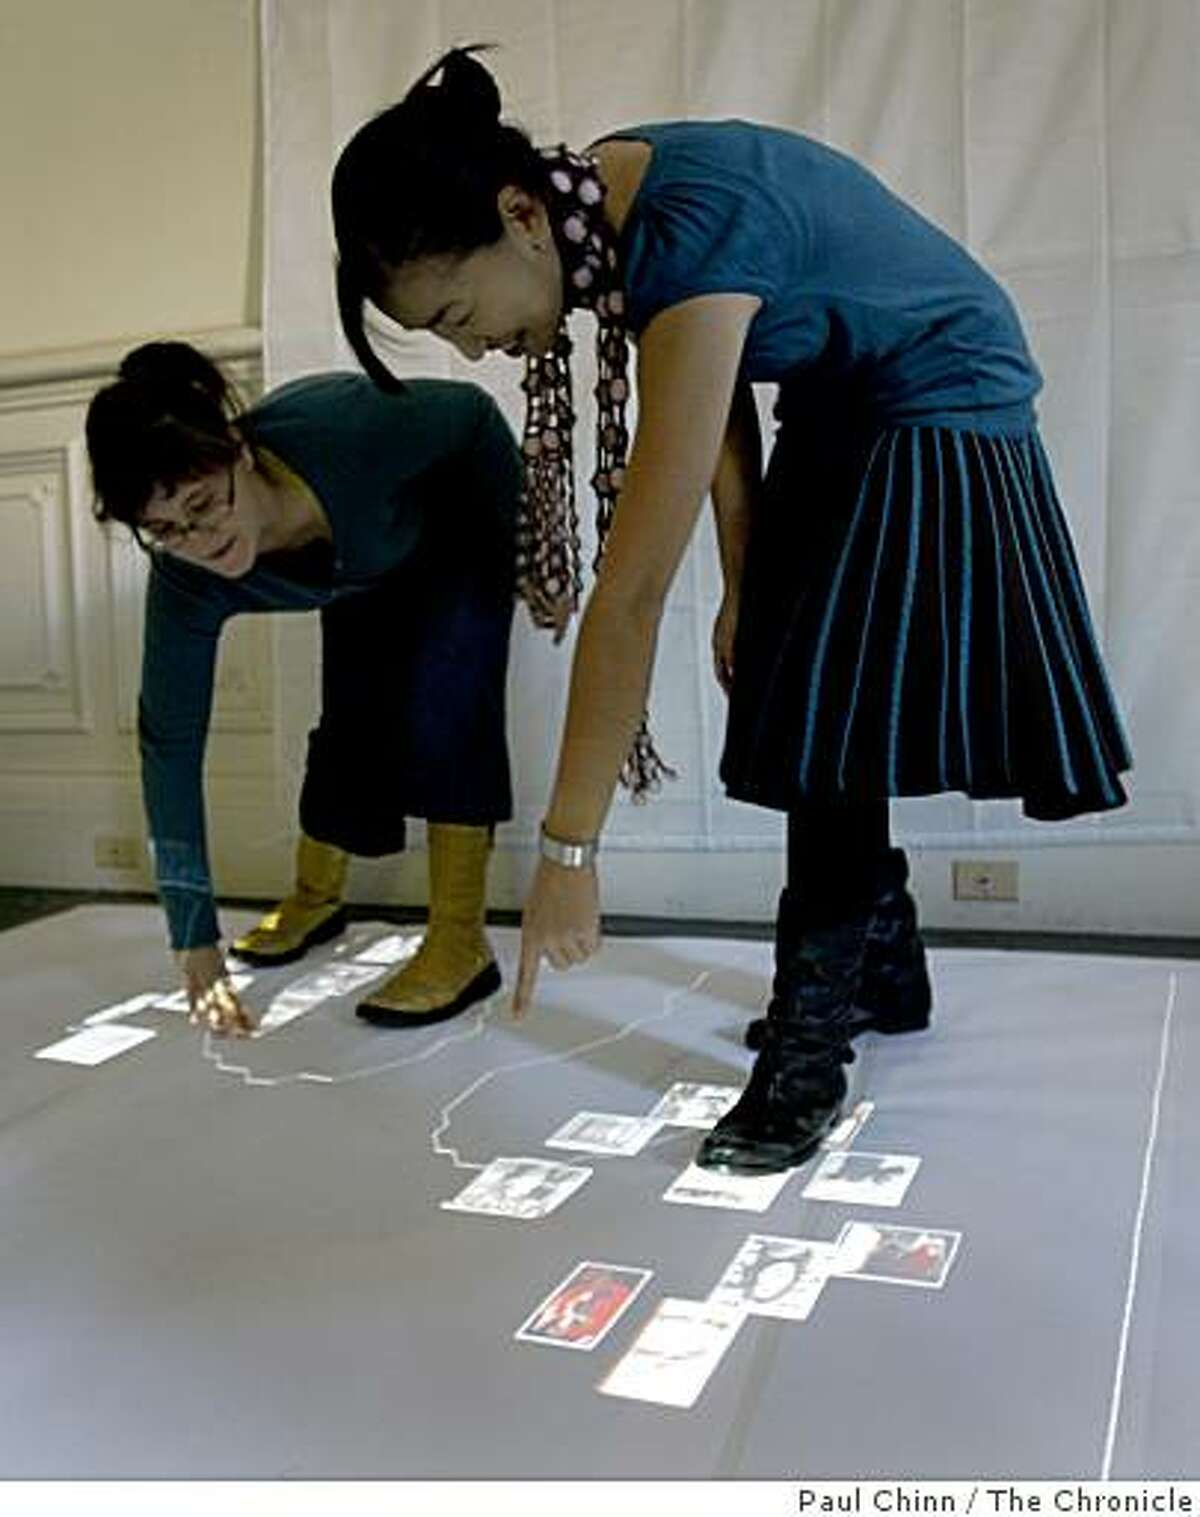 Prof. Kimiko Ryokai, right, and teaching assistant Elizabeth Goodman interact with digital shadows created by students in Ryokai's Theory and Practice of Tangible User Interfaces class at Cal's School of Information demonstrate their projects in Berkeley, Calif., on Tuesday, Dec. 9, 2008.